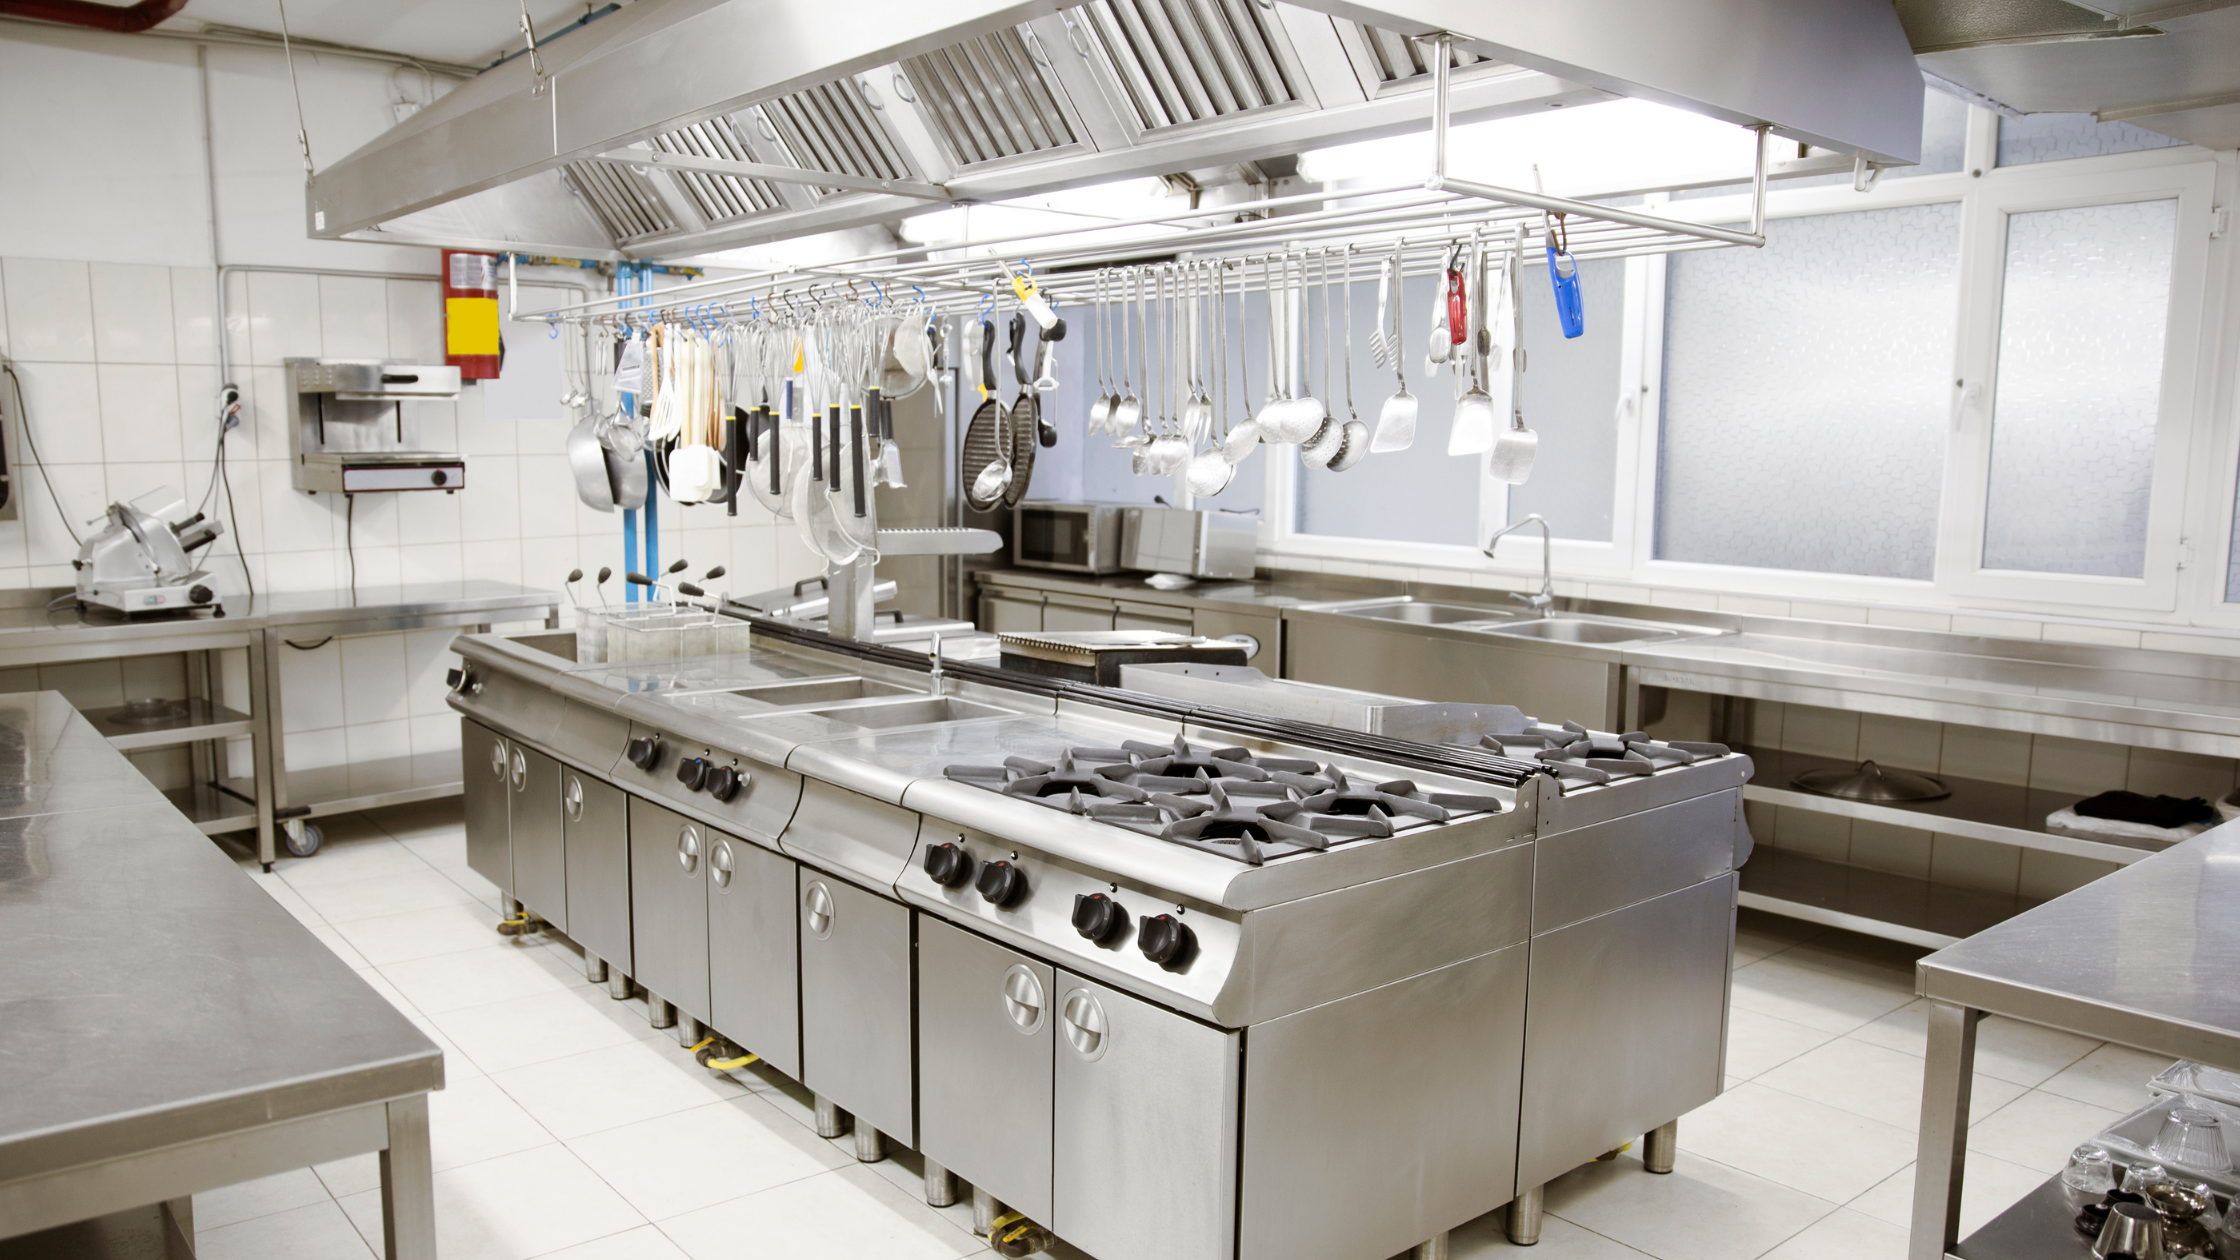 Ghost kitchens like the stainless steel, industrial one photographed, are presenting a huge opportunity for restaurants.